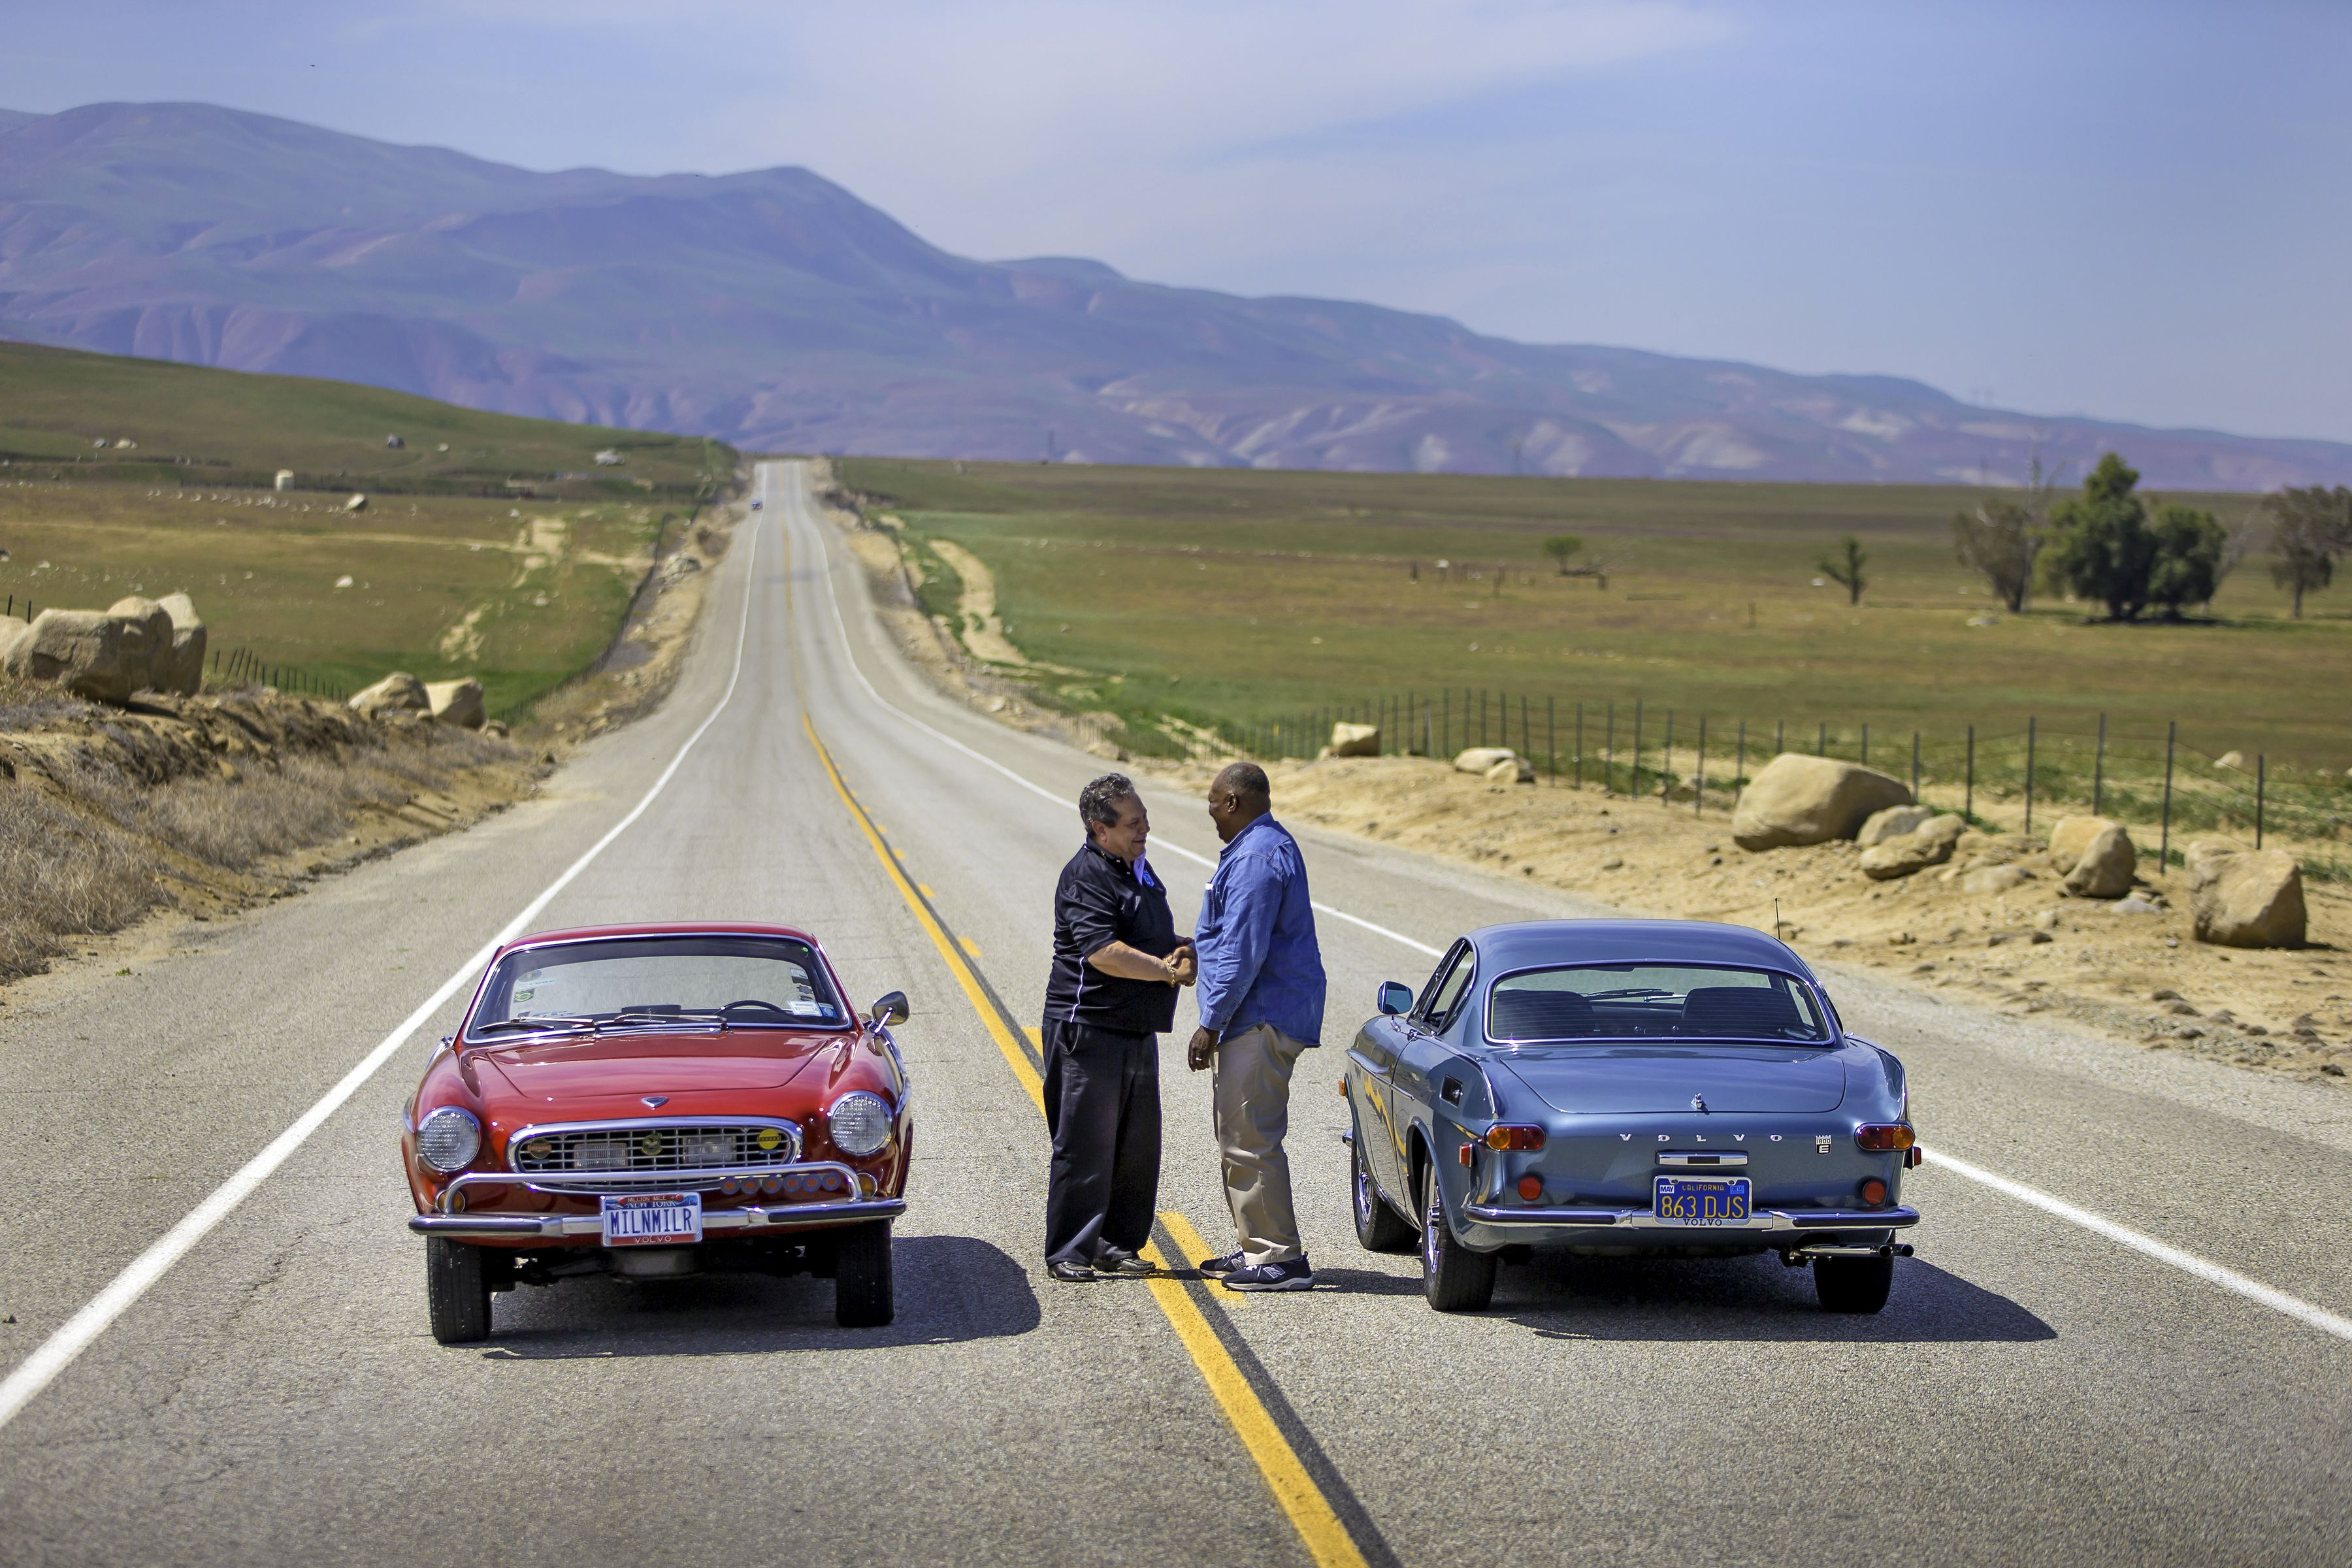 1 man, 1 car, 3 million miles. Join Irv Gordon as he makes history in his Volvo P1800. #VolvoReasons